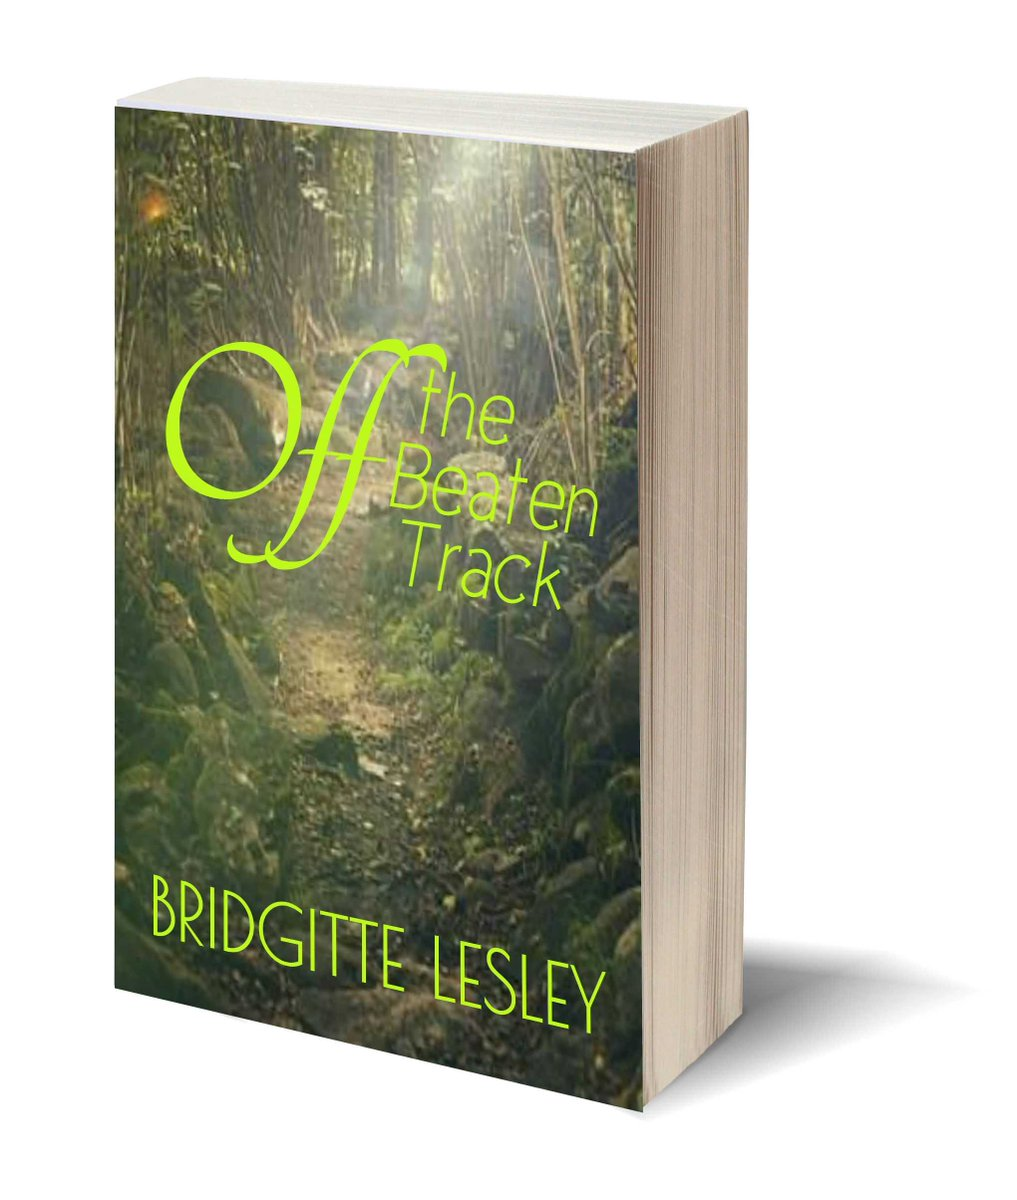 ★OFF THE BEATEN TRACK★ Childhood sweethearts who had big plans for the future! http://bit.ly/OffTheBeatenTrack-Paperback … http://bit.ly/OffTheBeatenTrack-eBook-Kobo …   http://wp.me/P4D5bw-aP  #ASMSG bookboost BridgitteLesley   pic.twitter.com/nmQumc0KVV #bookaholic